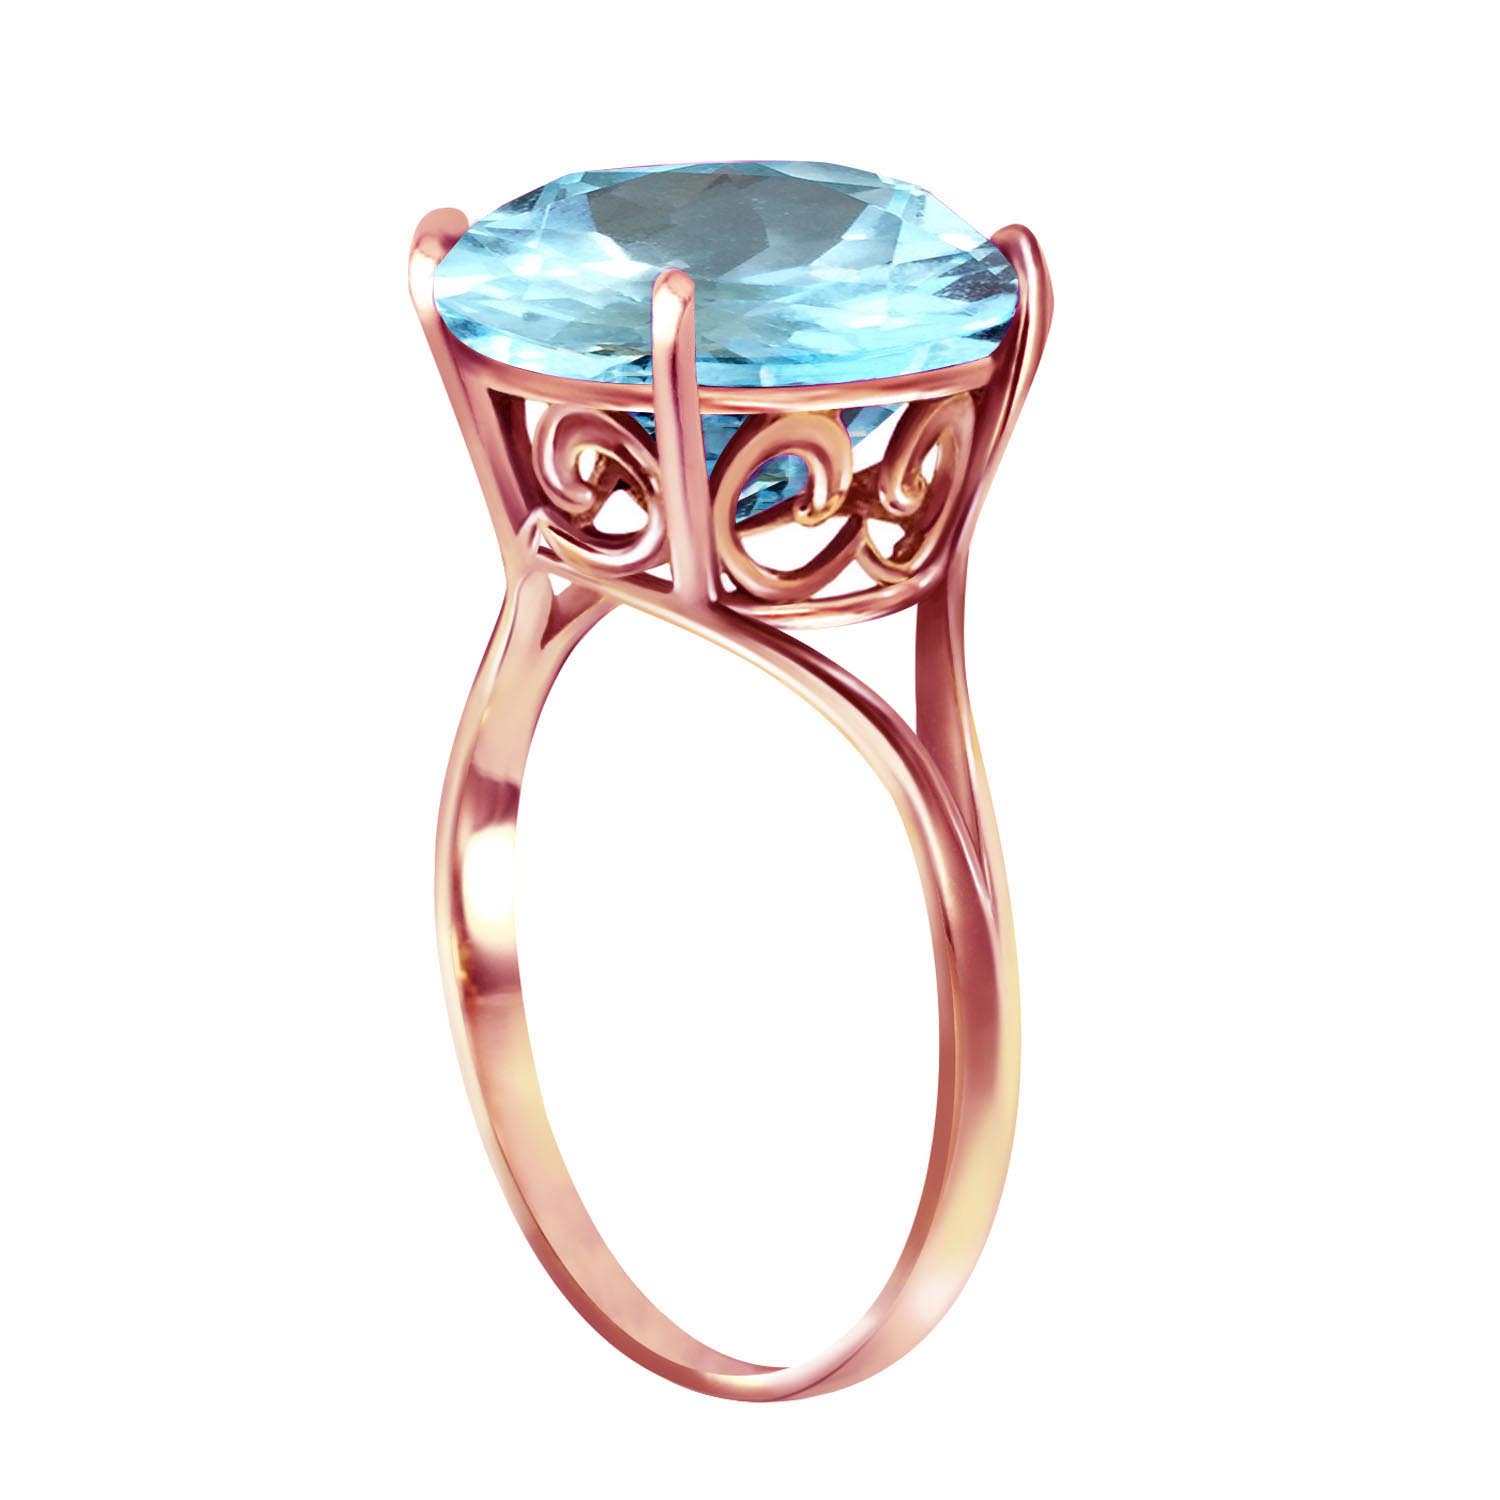 Round Cut Blue Topaz Ring 8 ct in 9ct Rose Gold